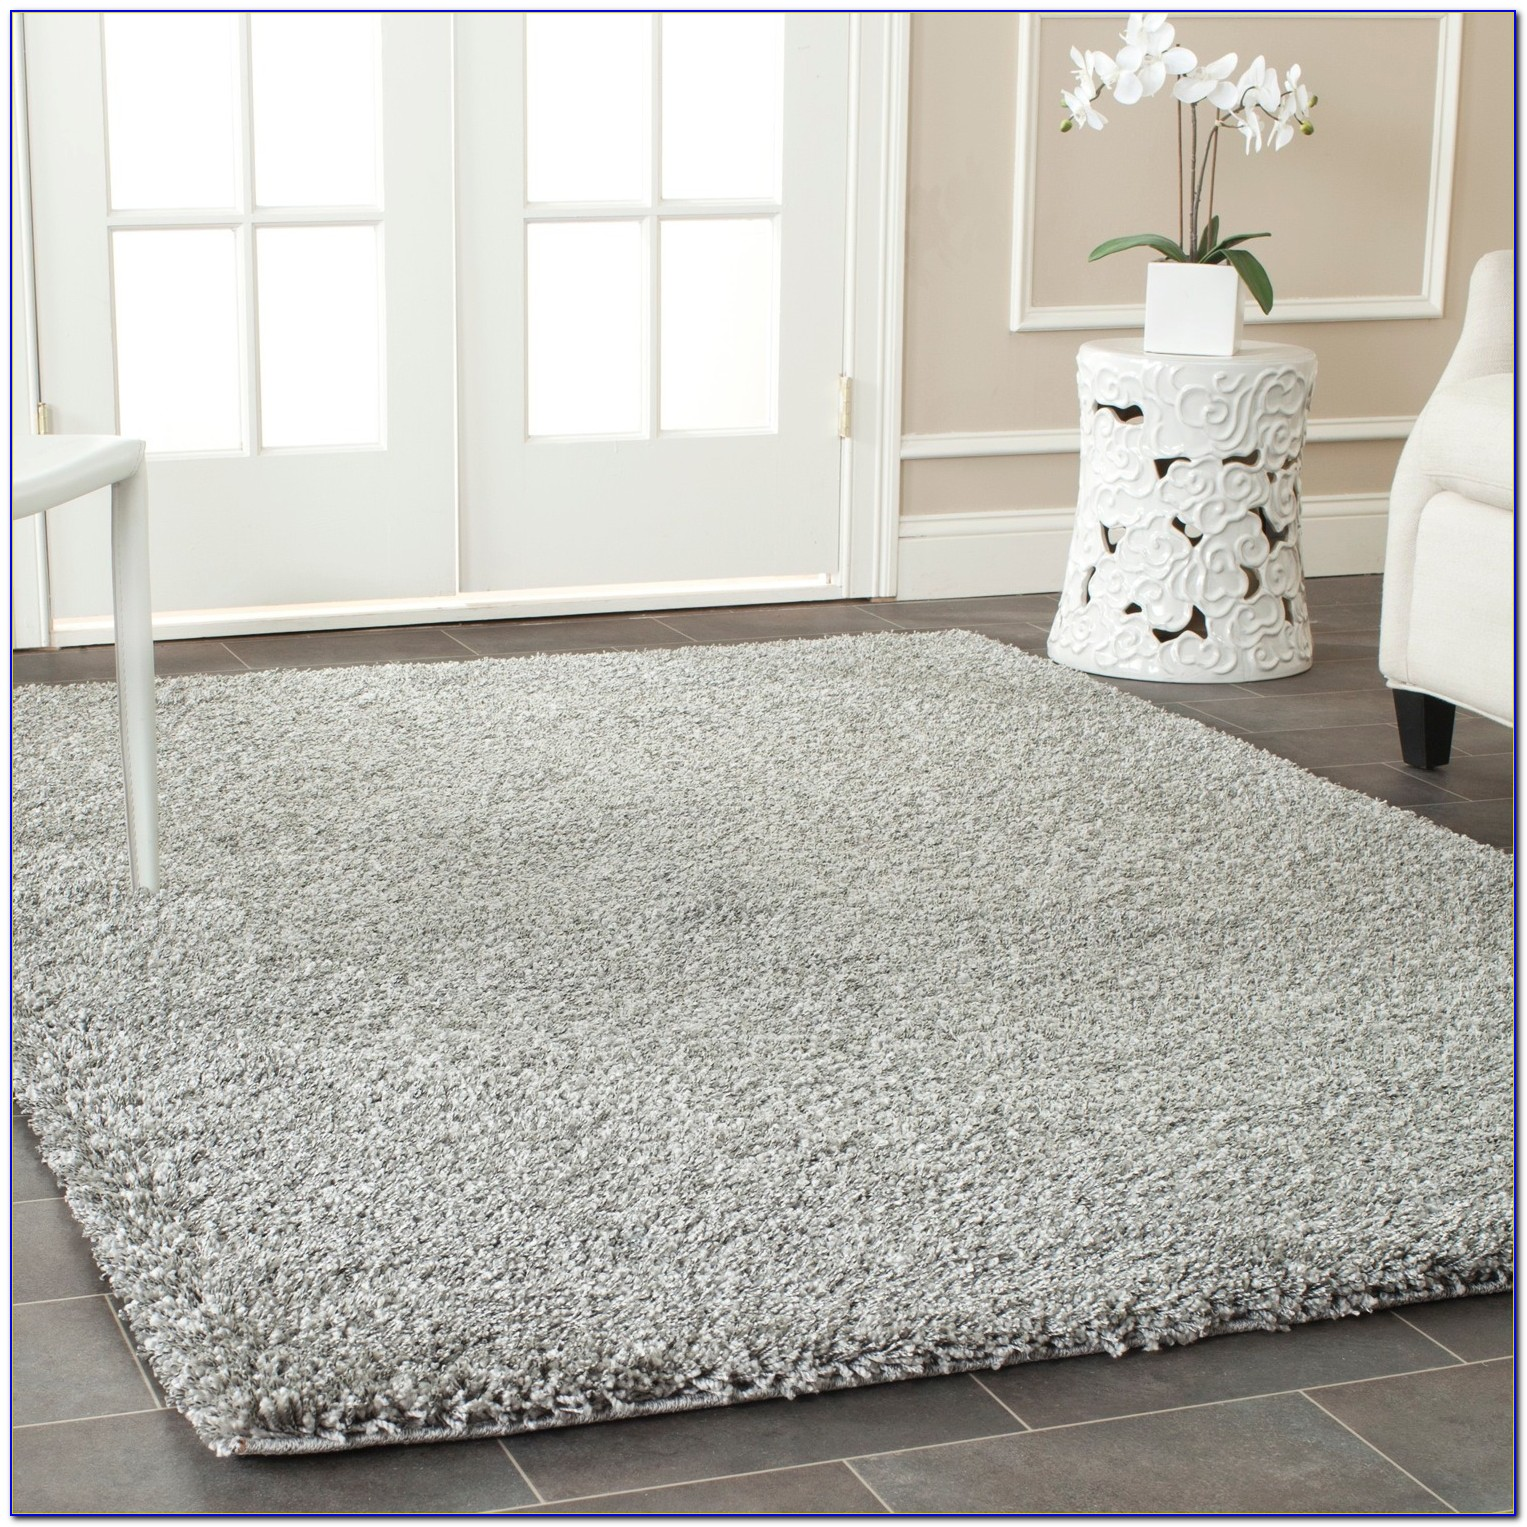 Overstock Rugs 8 215 10 Rugs Home Design Ideas